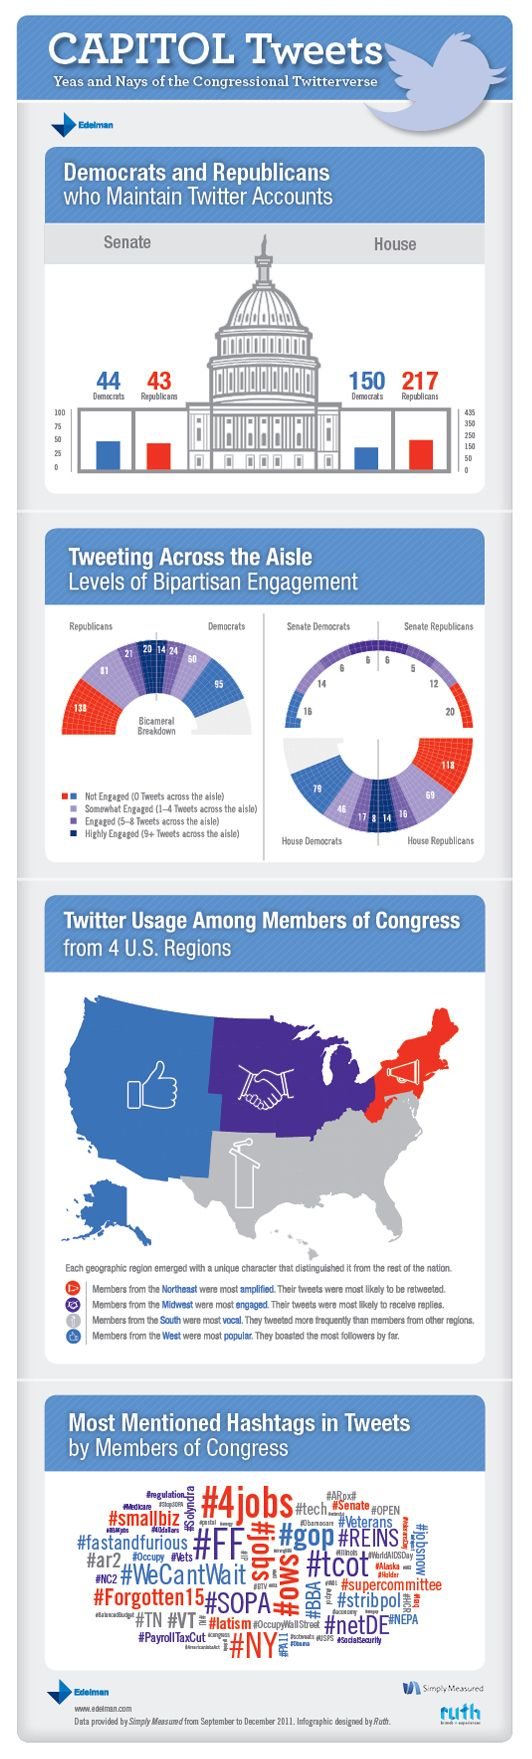 Capitol Tweets Yeas and Nays of the Congressional Twitterverse  http://infographiclist.com/2012/03/25/capitol-tweets-yeas-and-nays-of-the-congressional-twitterverse-infographic/#